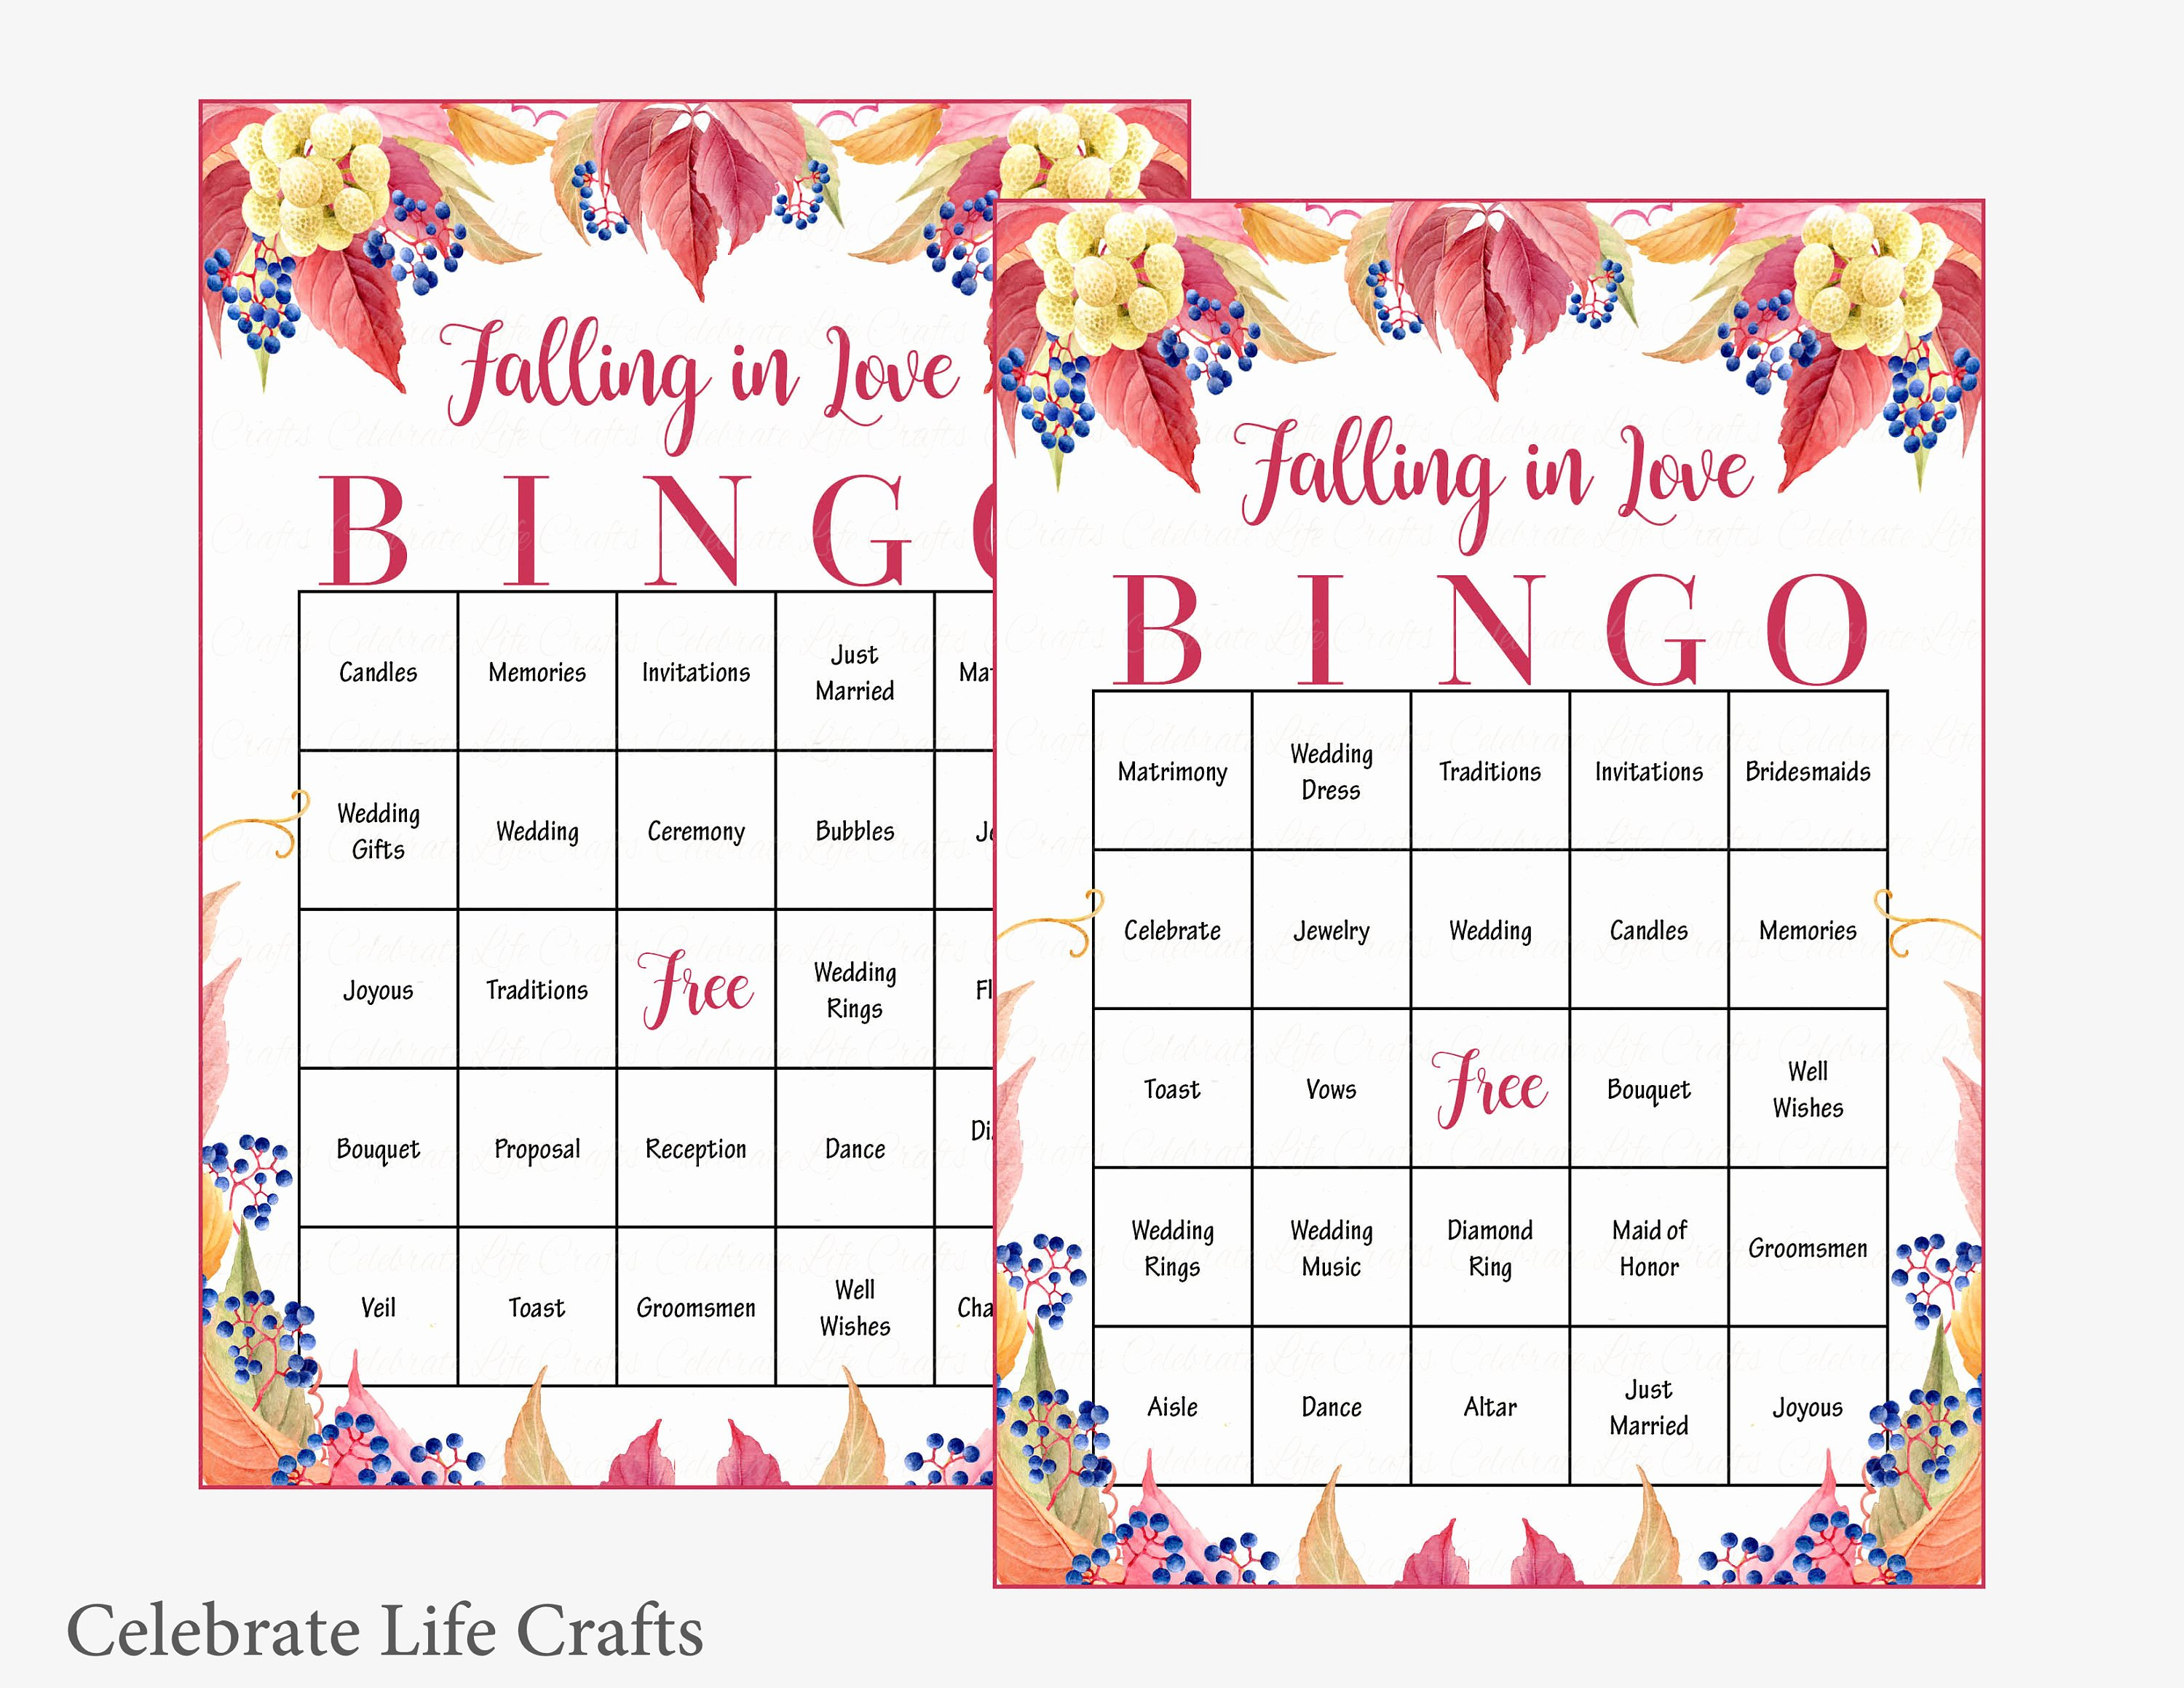 Bridal Shower Bingo Template Best Of 100 Falling In Love Wedding Bingo Cards Fall Bridal Shower